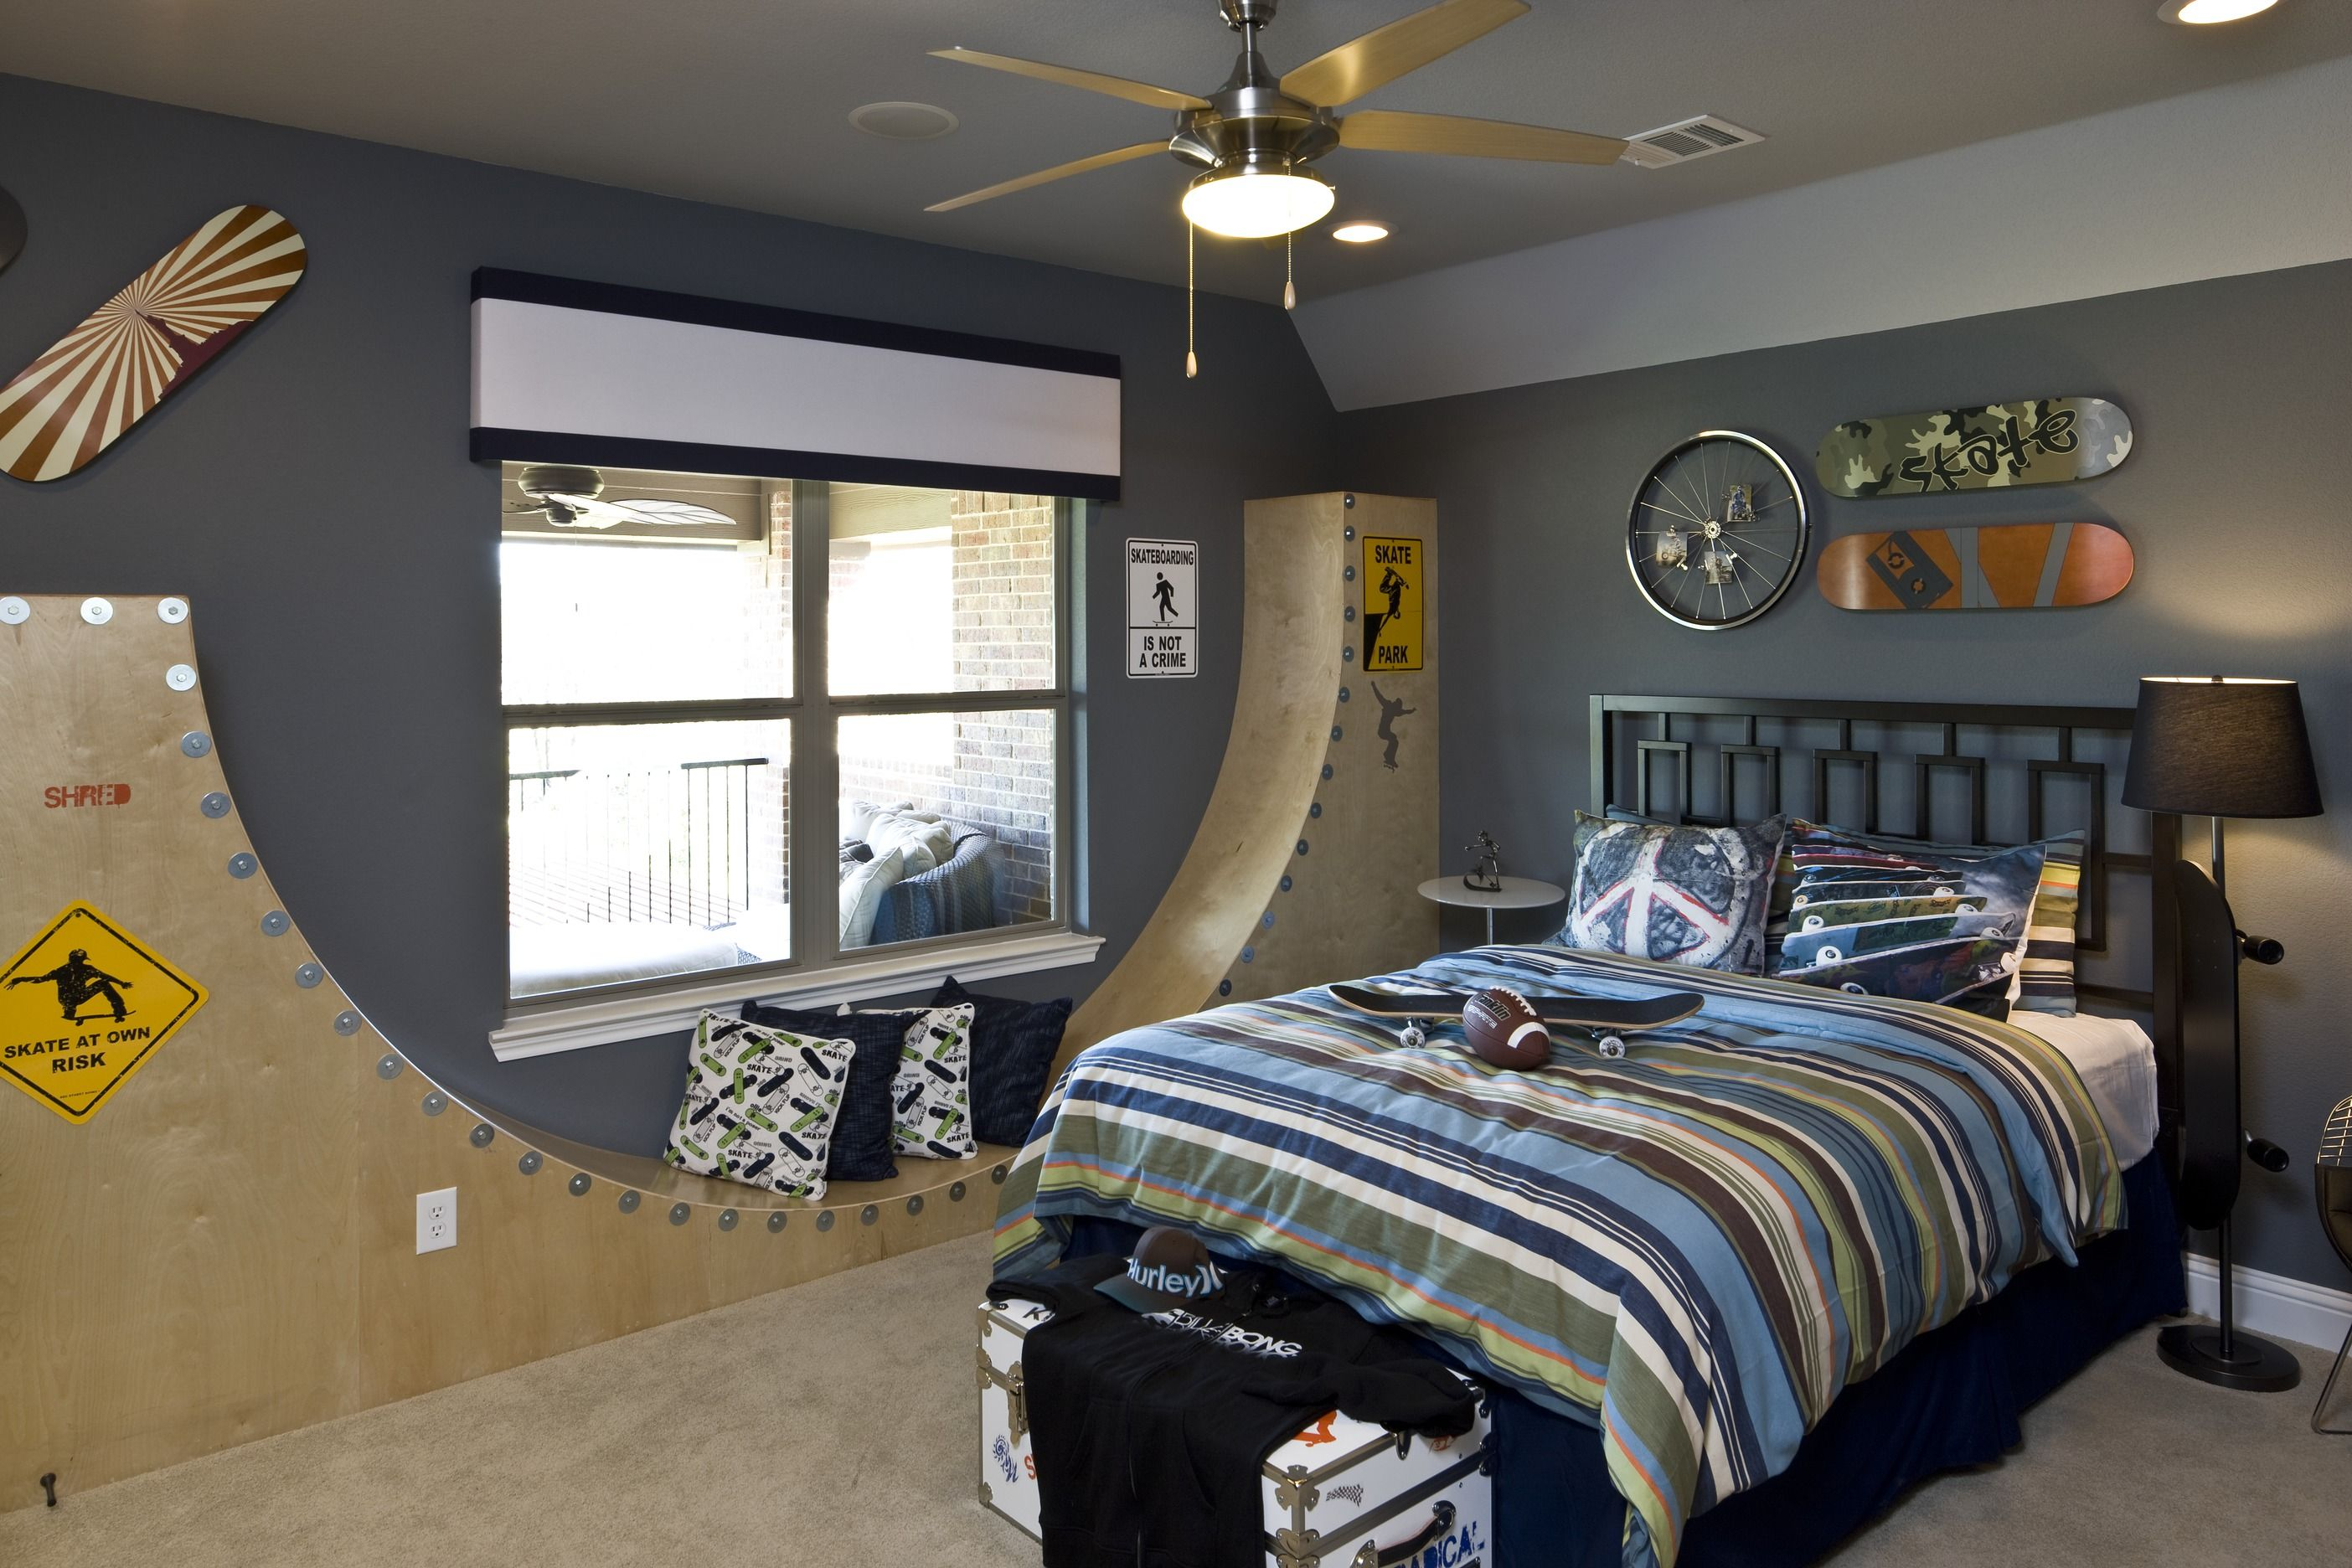 Head To The Skate Park In This Skateboard Themed Room Reserve At Colleyville Tx Teenage Room Skateboard Bedroom Boys Bedroom Themes